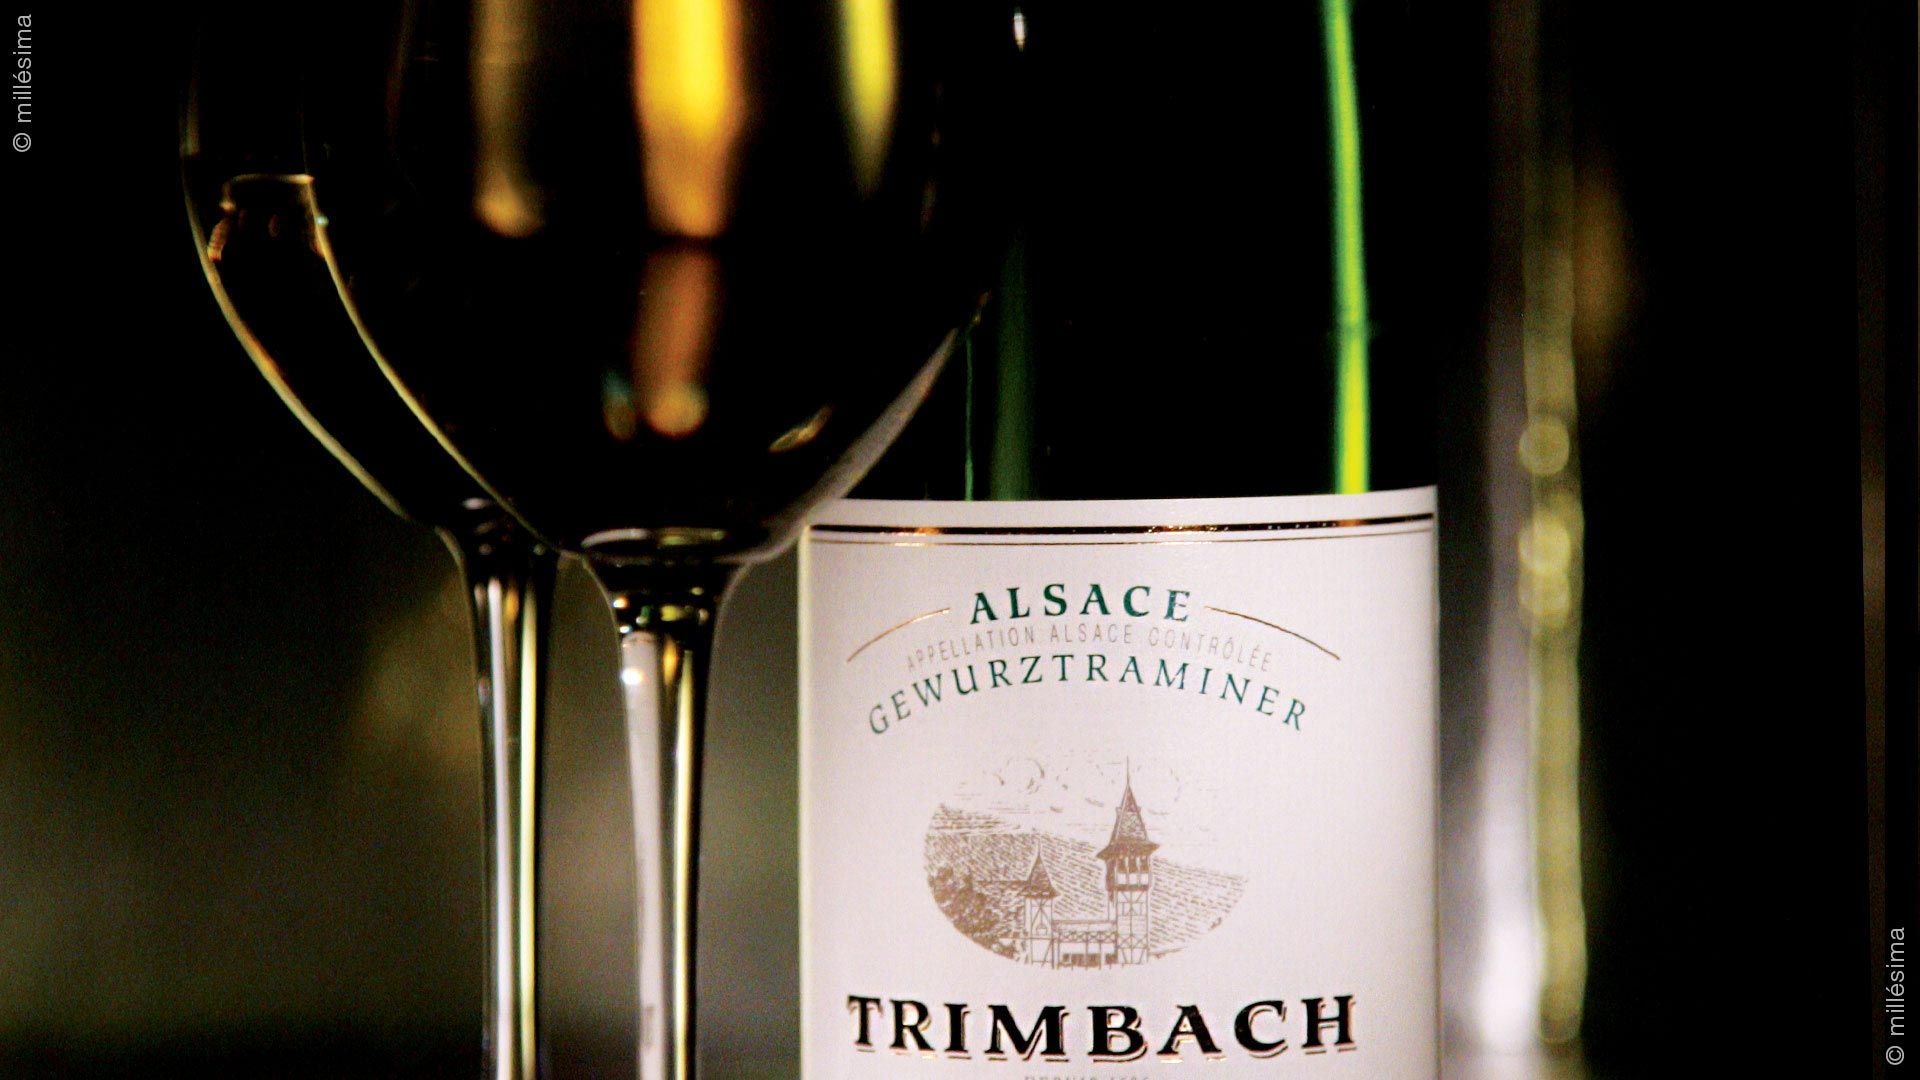 Maison Trimbach : Gewurztraminer Vendanges tardives 1997 - 1